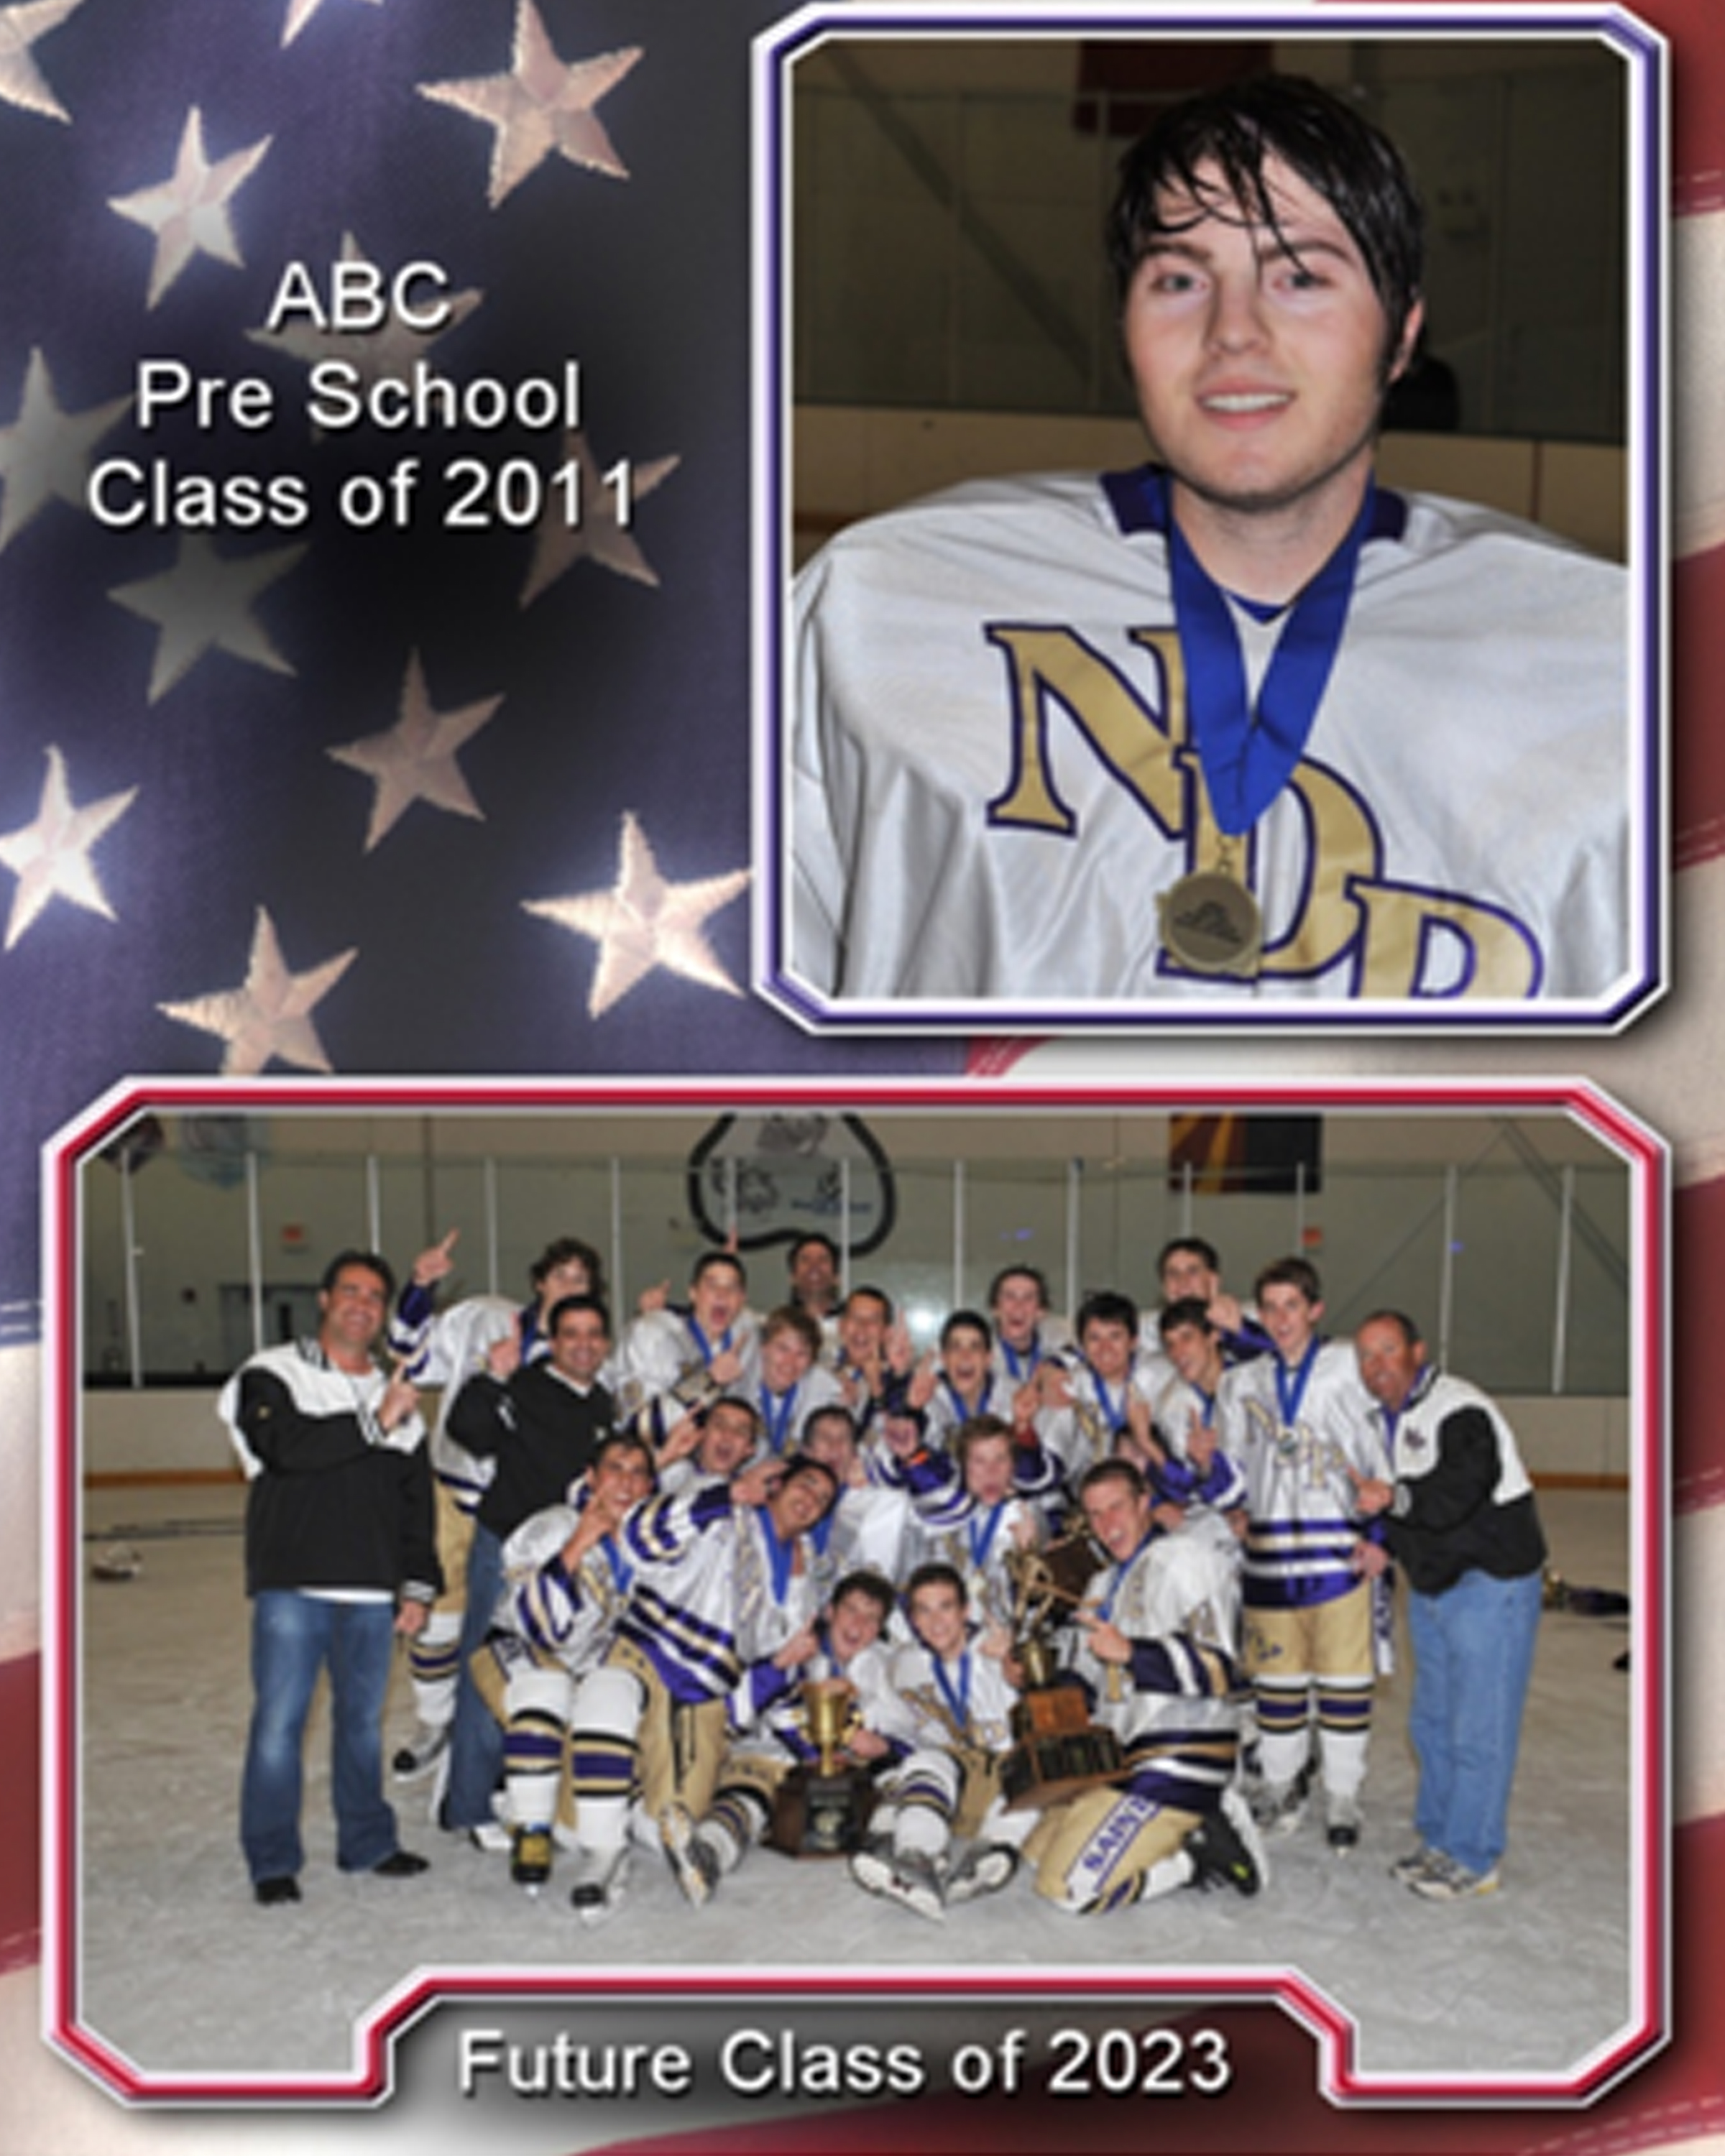 Championship Team Pictures